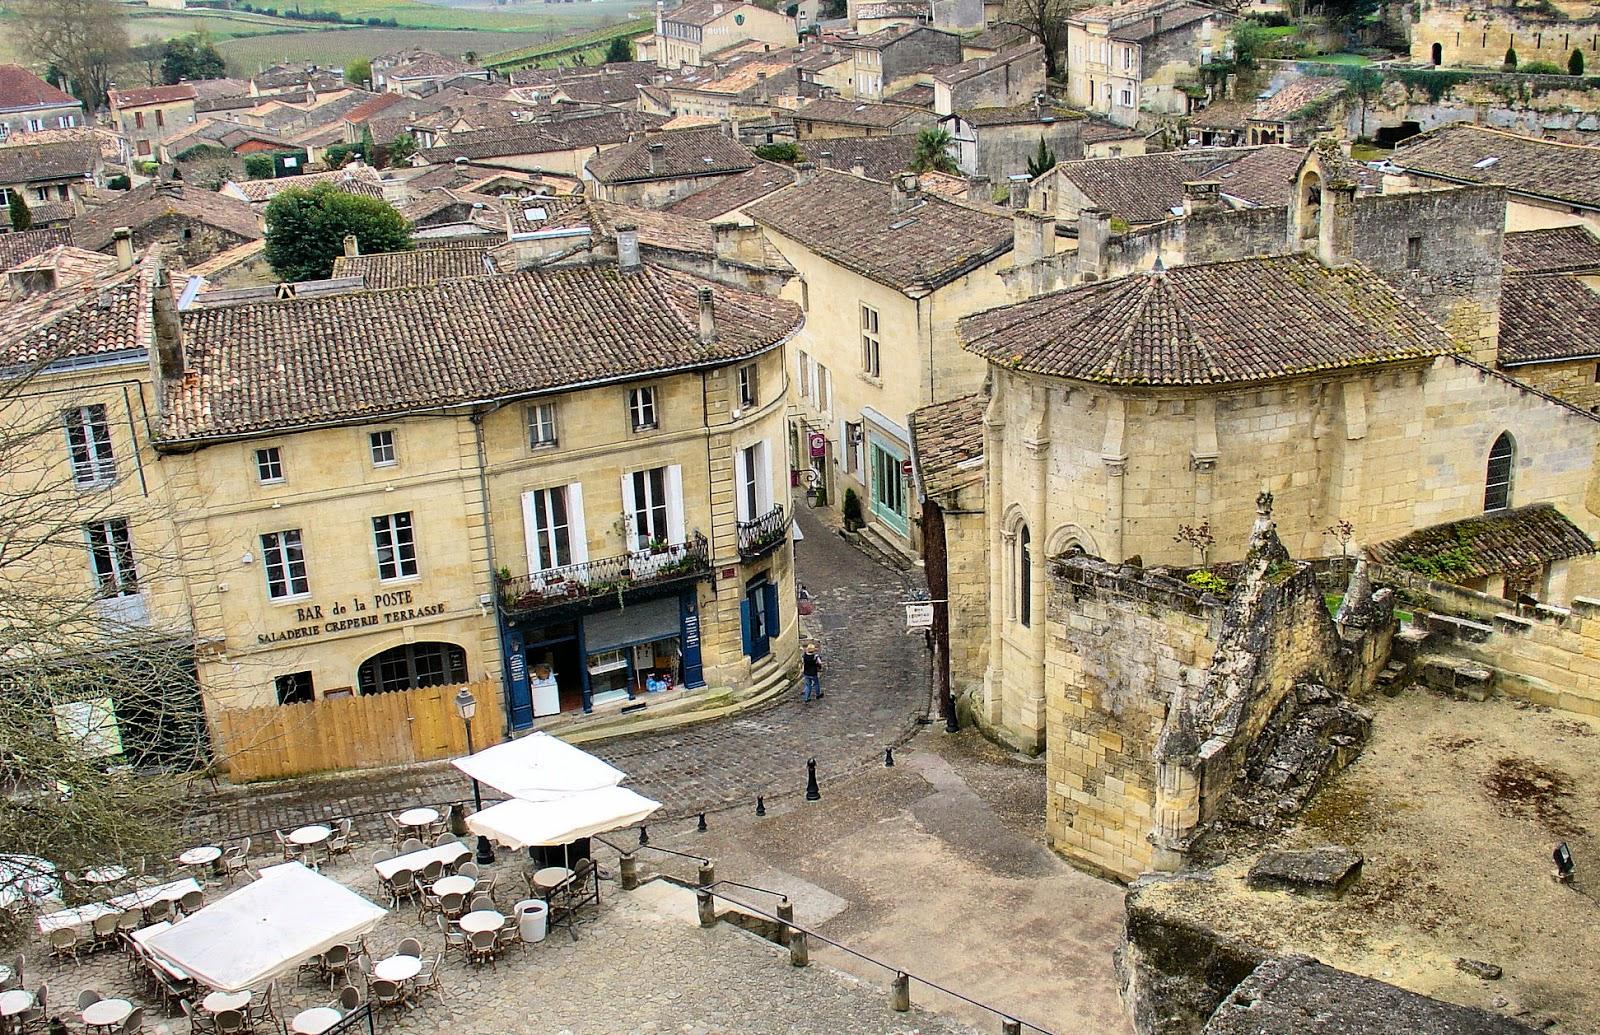 View of Saint-Emilion as seen from the square outside the Monolithic Church square. Chapel of the Holy Trinity can be seen to the right.